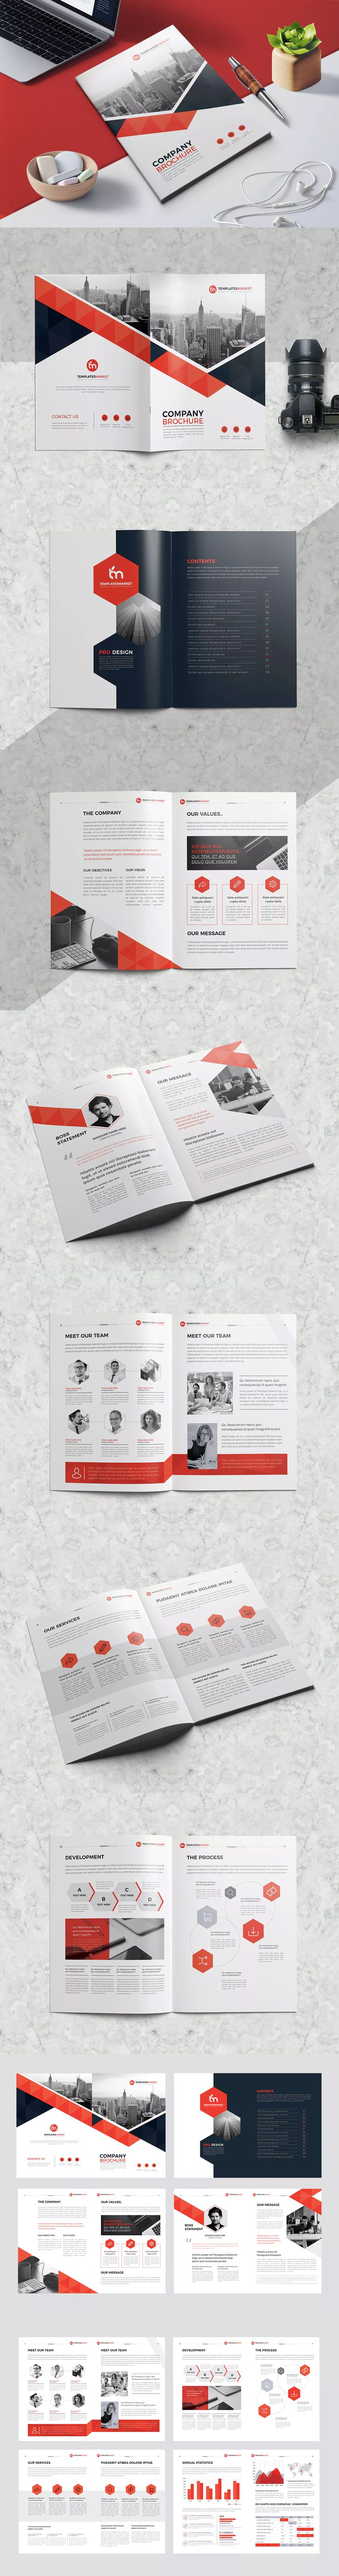 TM Company Profile Template InDesign INDD A4